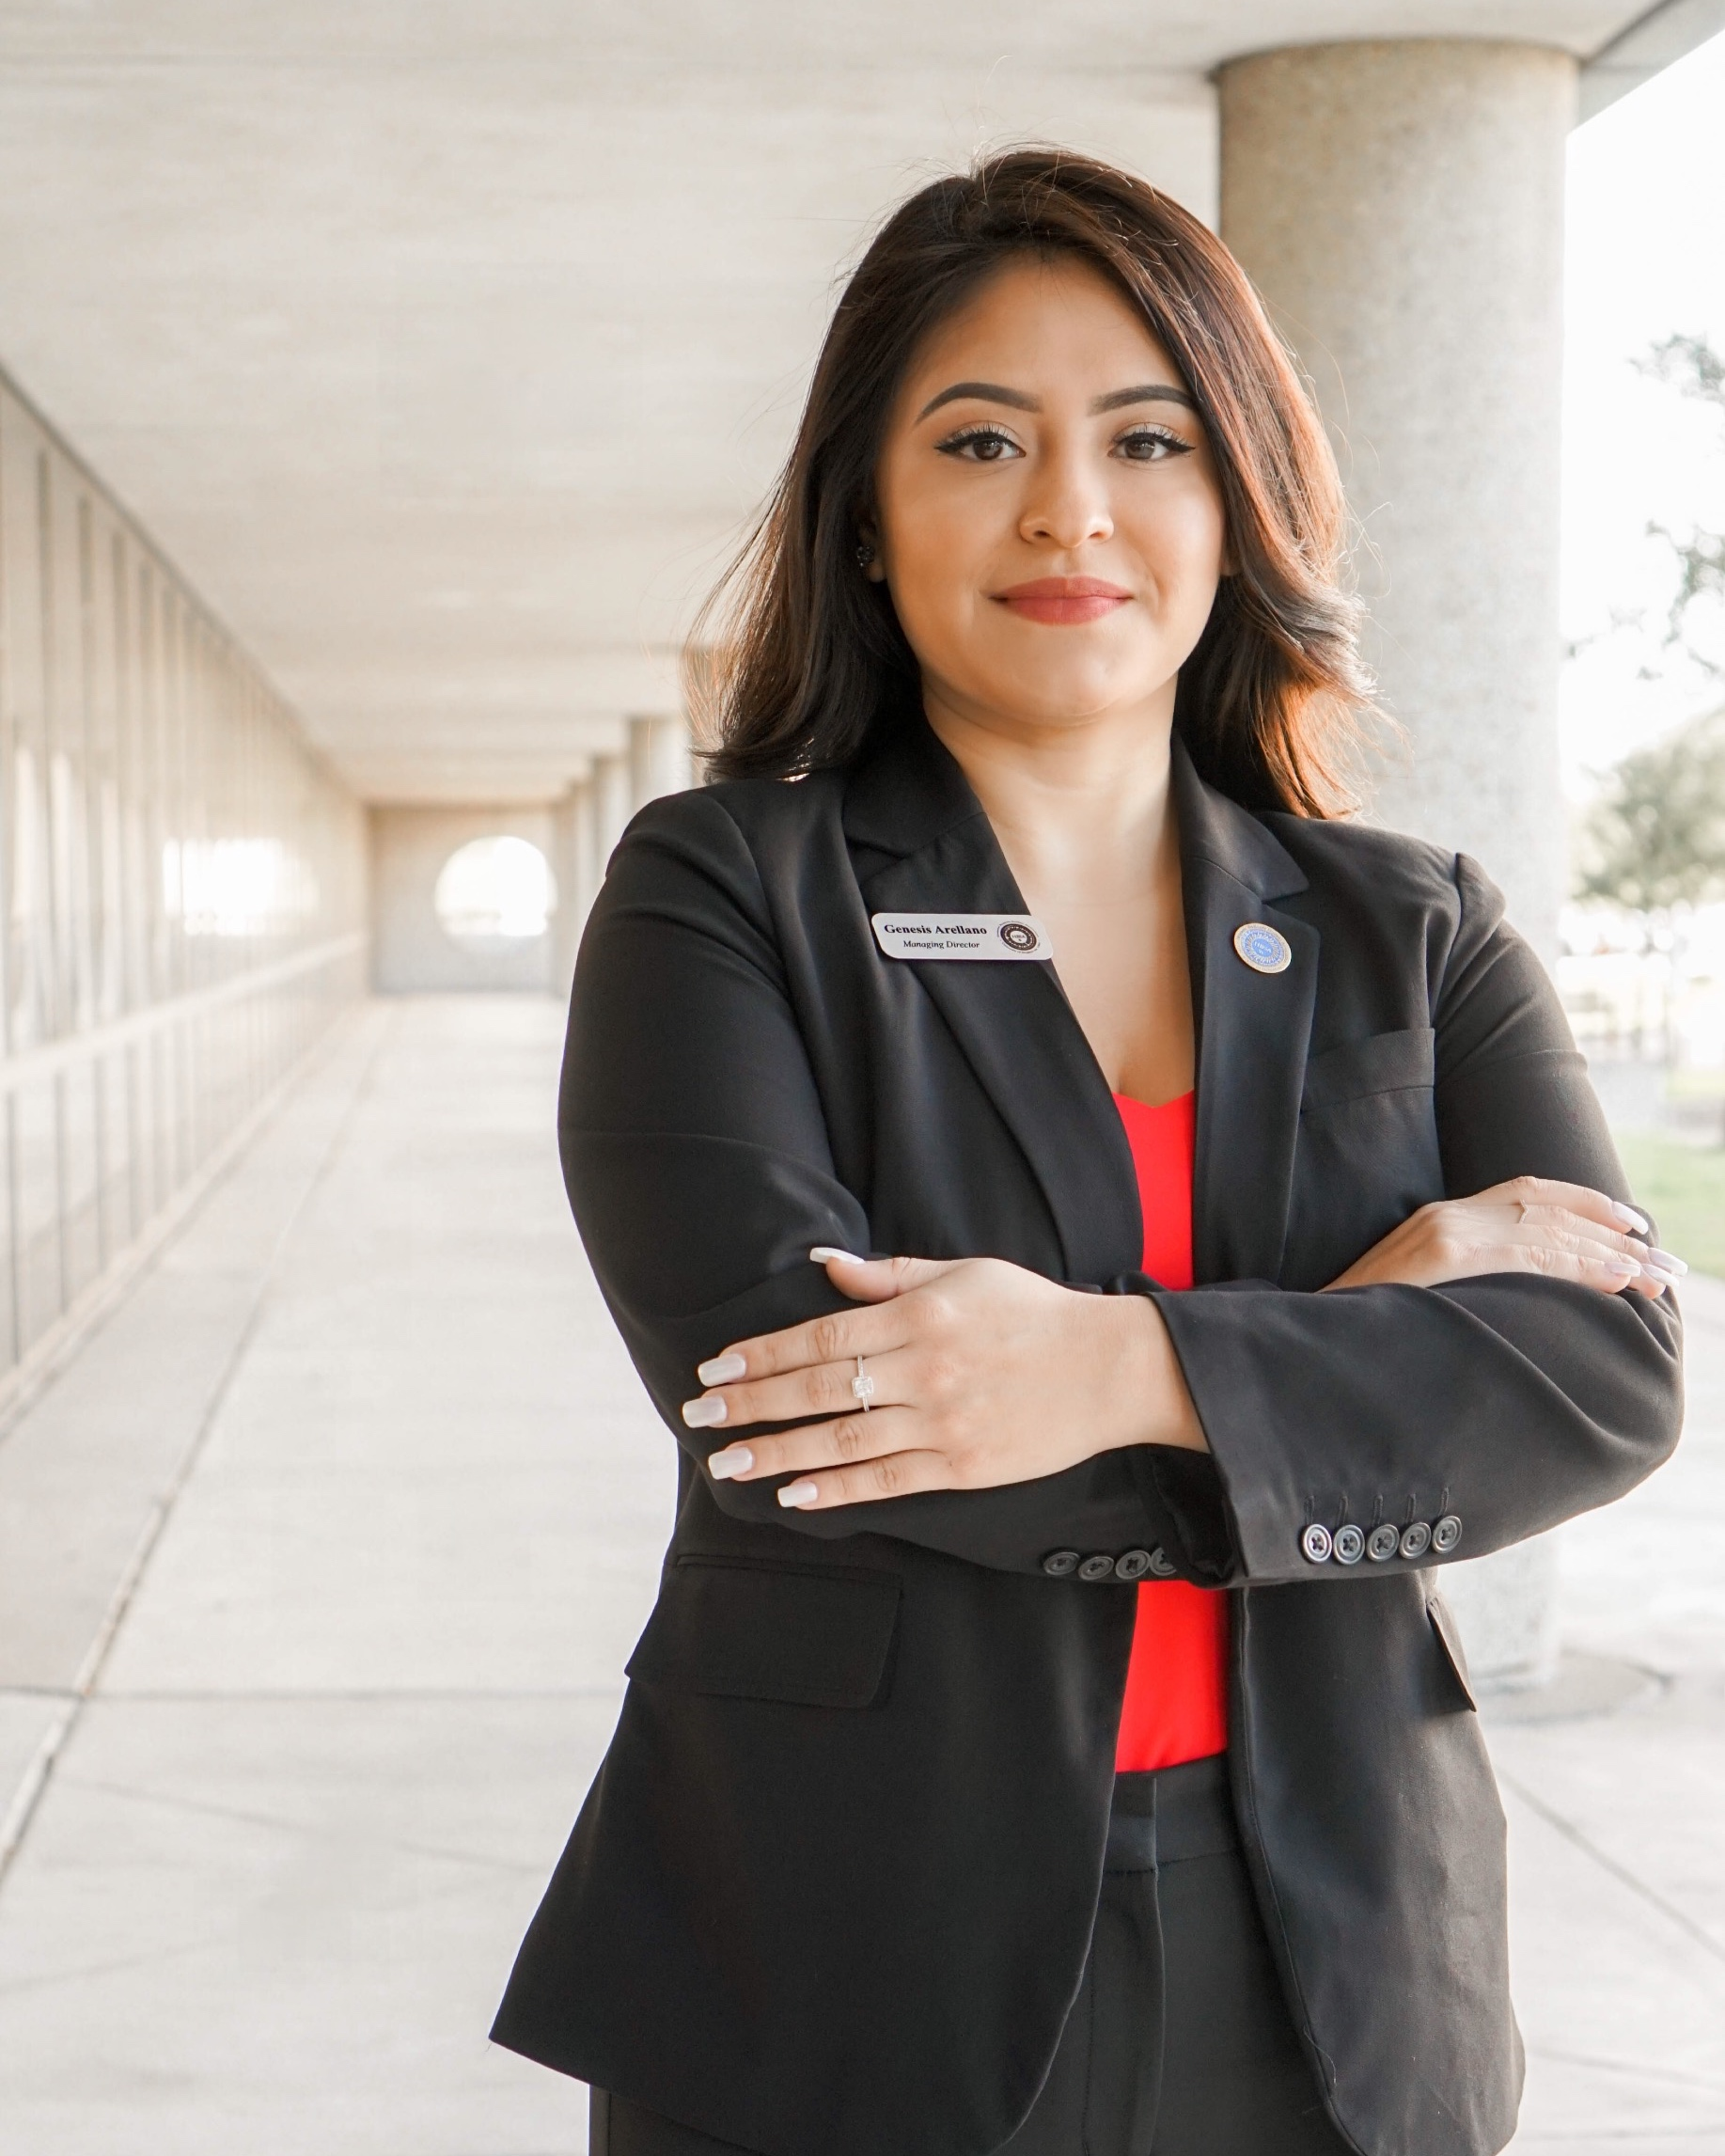 Genesis Arellano- Connect with me on LinkedIn!